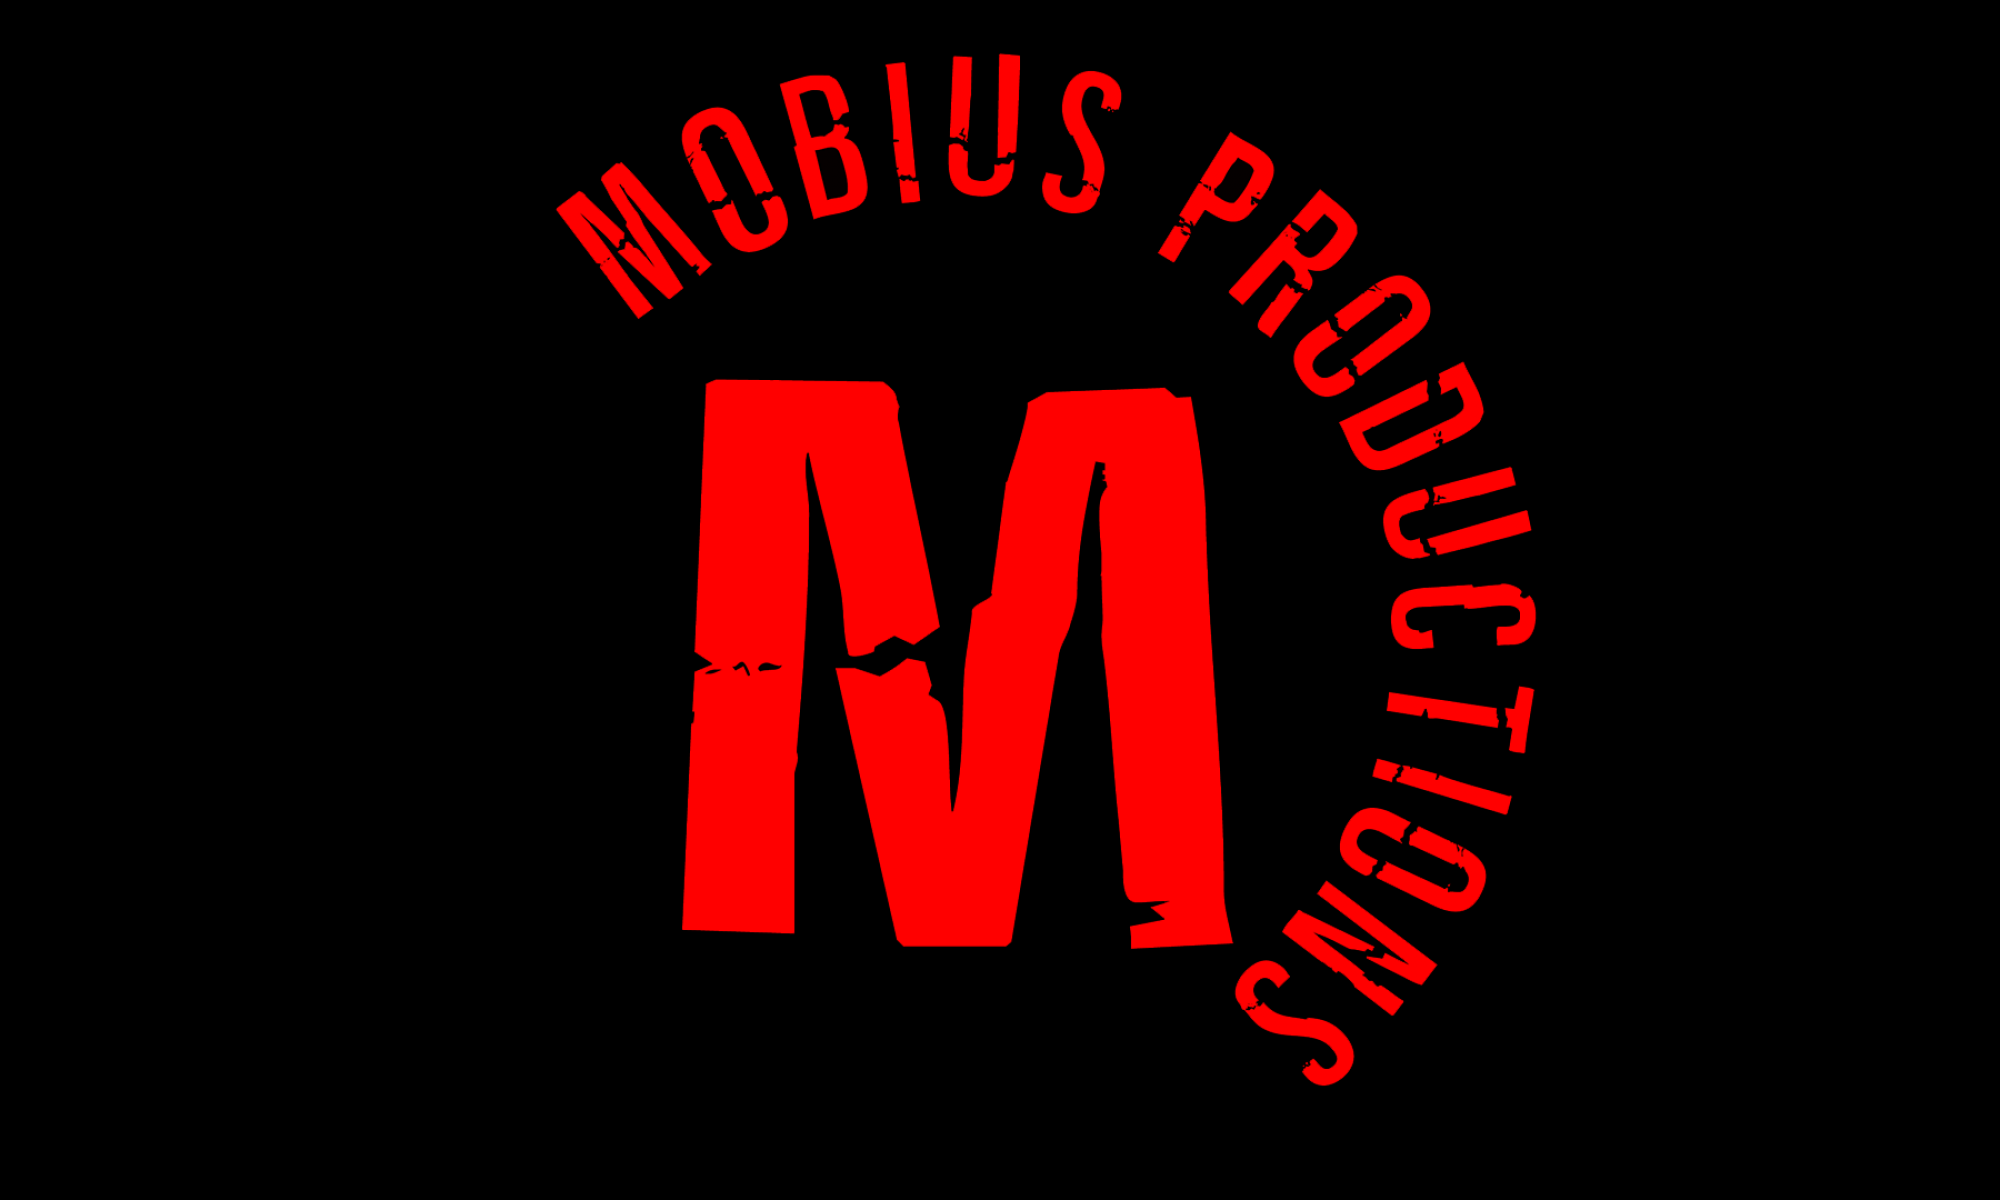 Mobius Productions